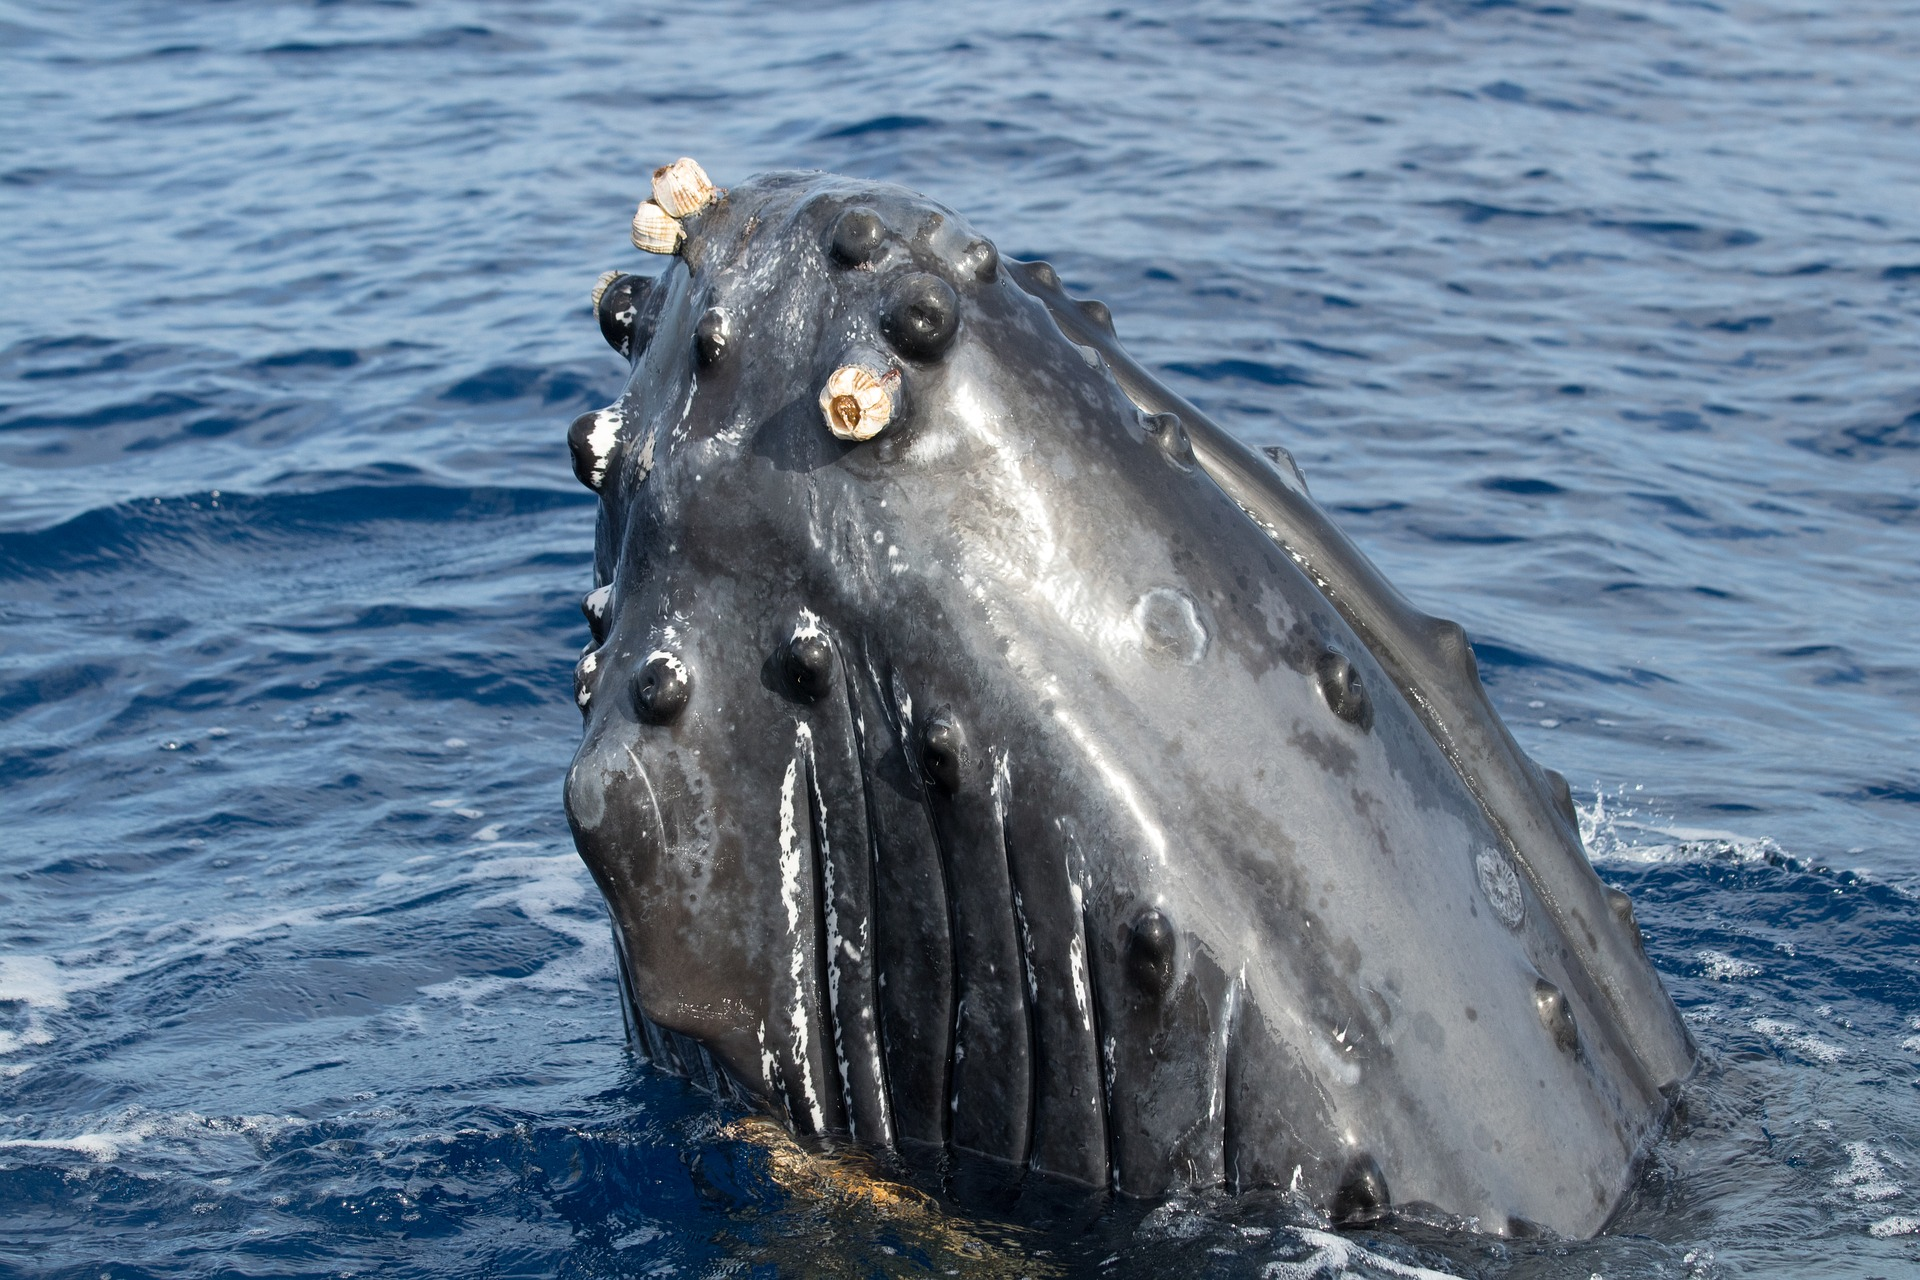 safari-cetace-observation-baleines-reunion